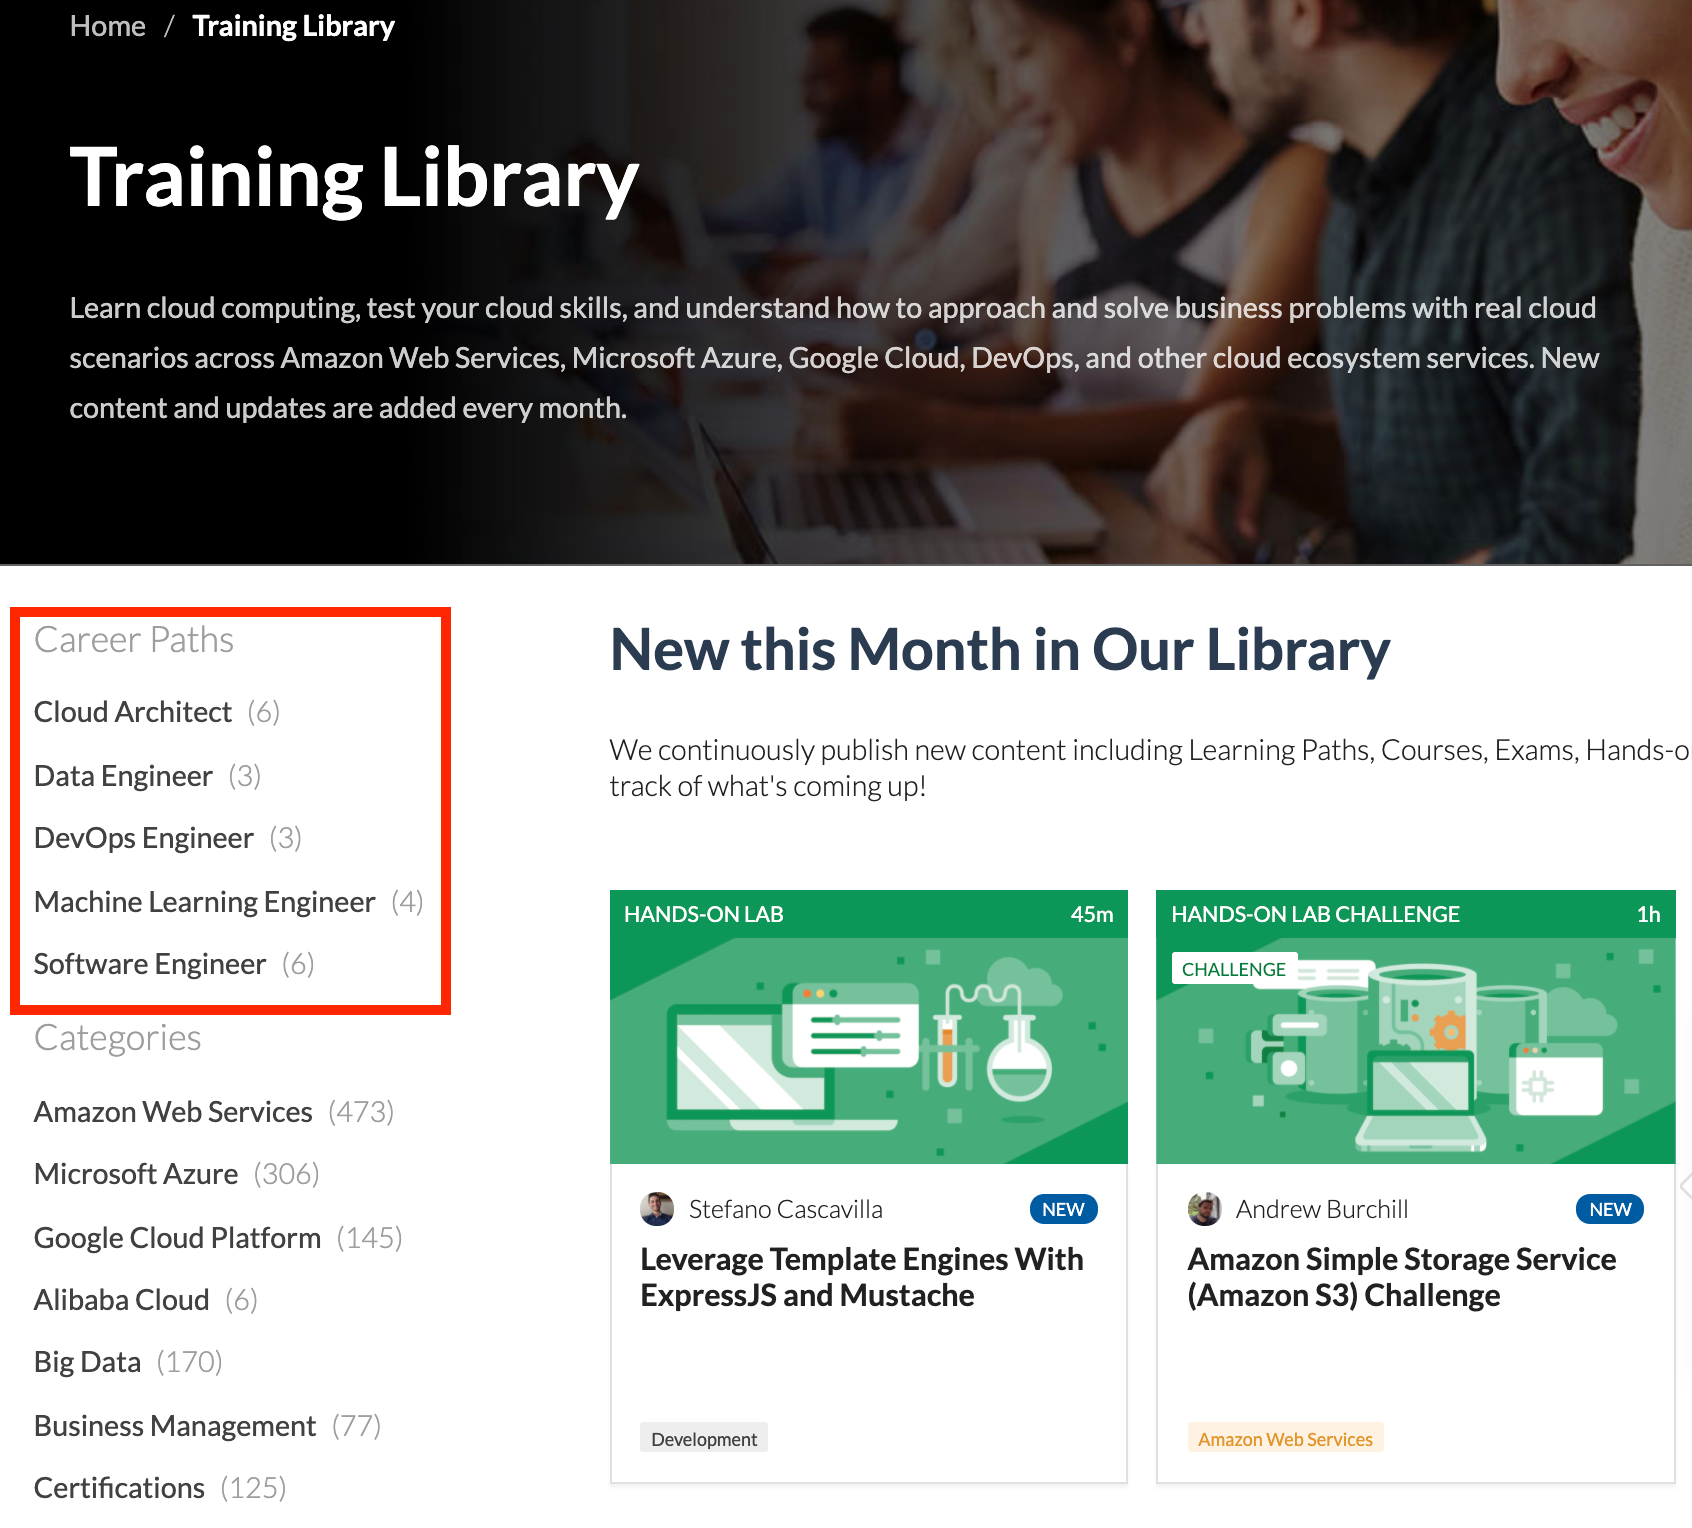 Career Paths in Training Library